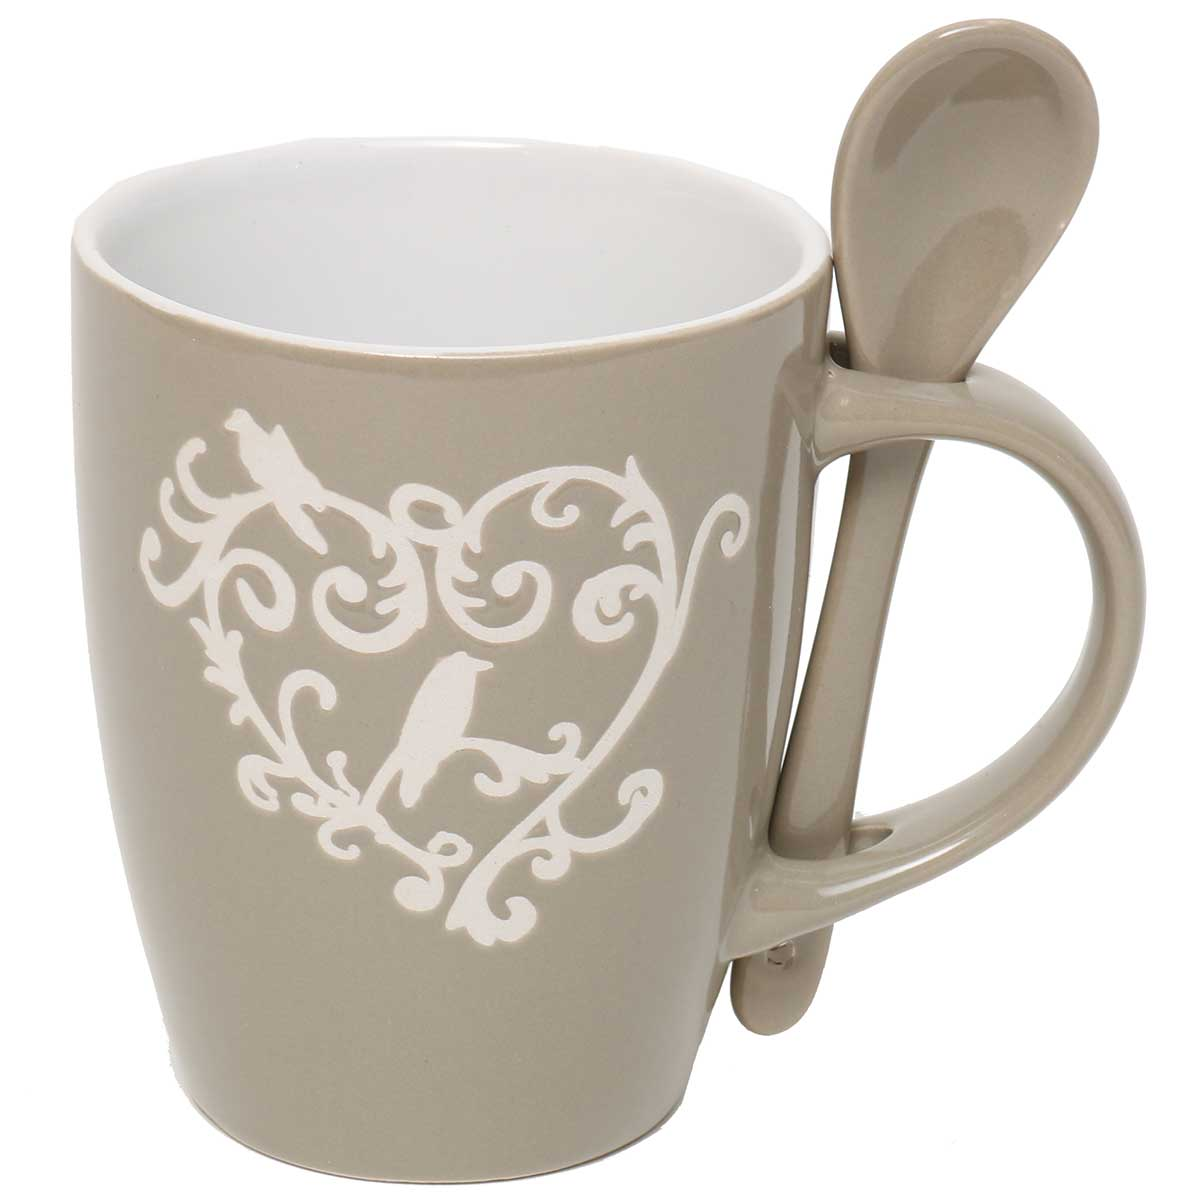 "PROVENCE MUG 4.5""X4"" with Spoon 1""x5"" Taupe/Cream A2109 70sp"